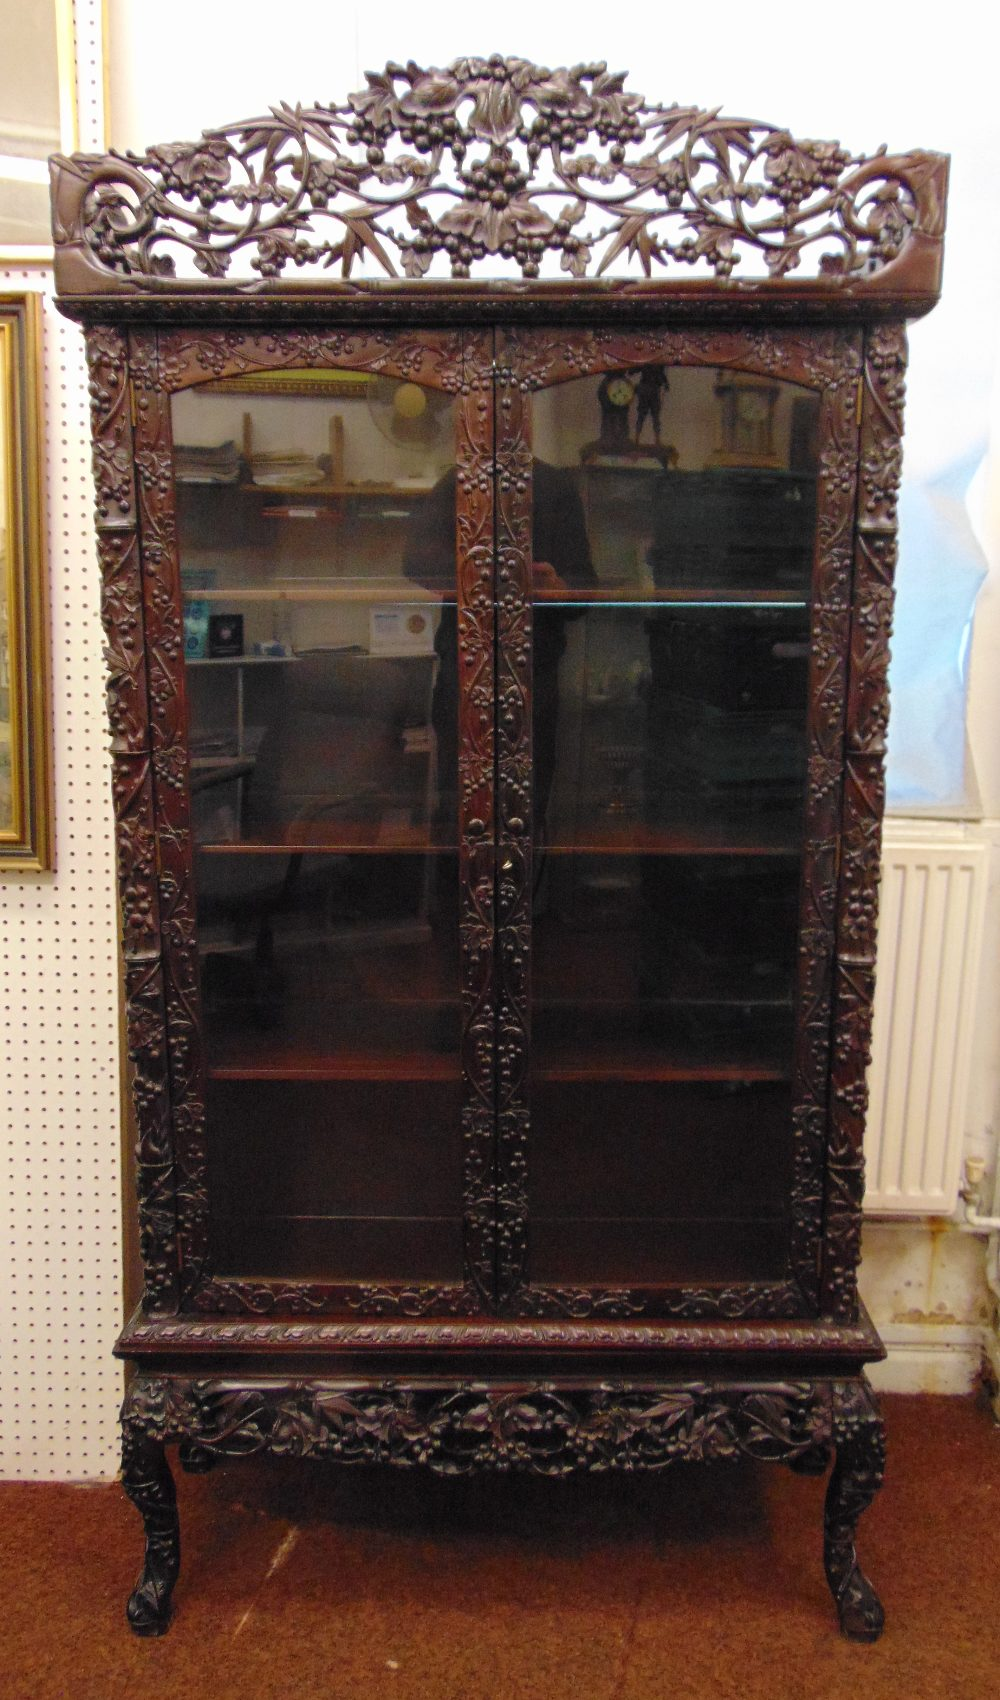 A Chinese rectangular hardwood glazed double door display cabinet, profusely carved and pierced with